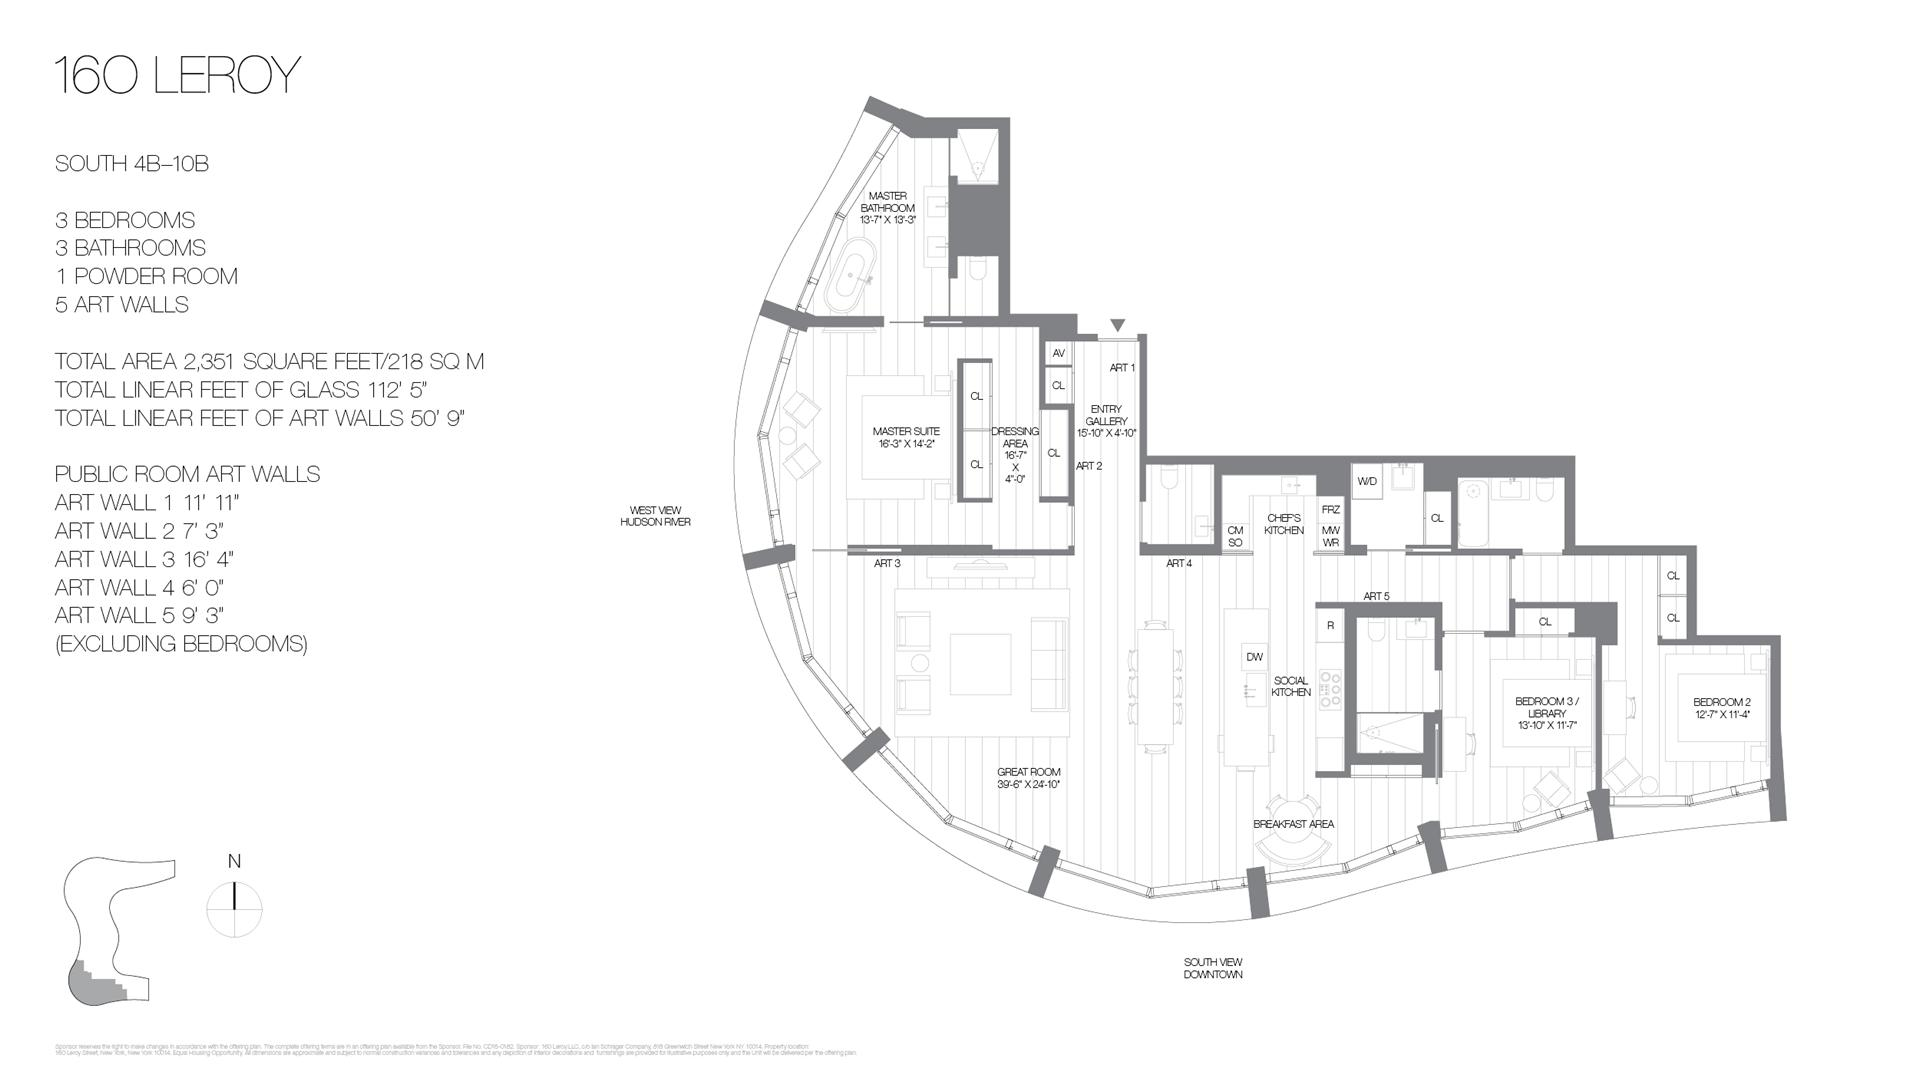 Floor plan of 160 Leroy St, SOUTH10B - West Village - Meatpacking District, New York